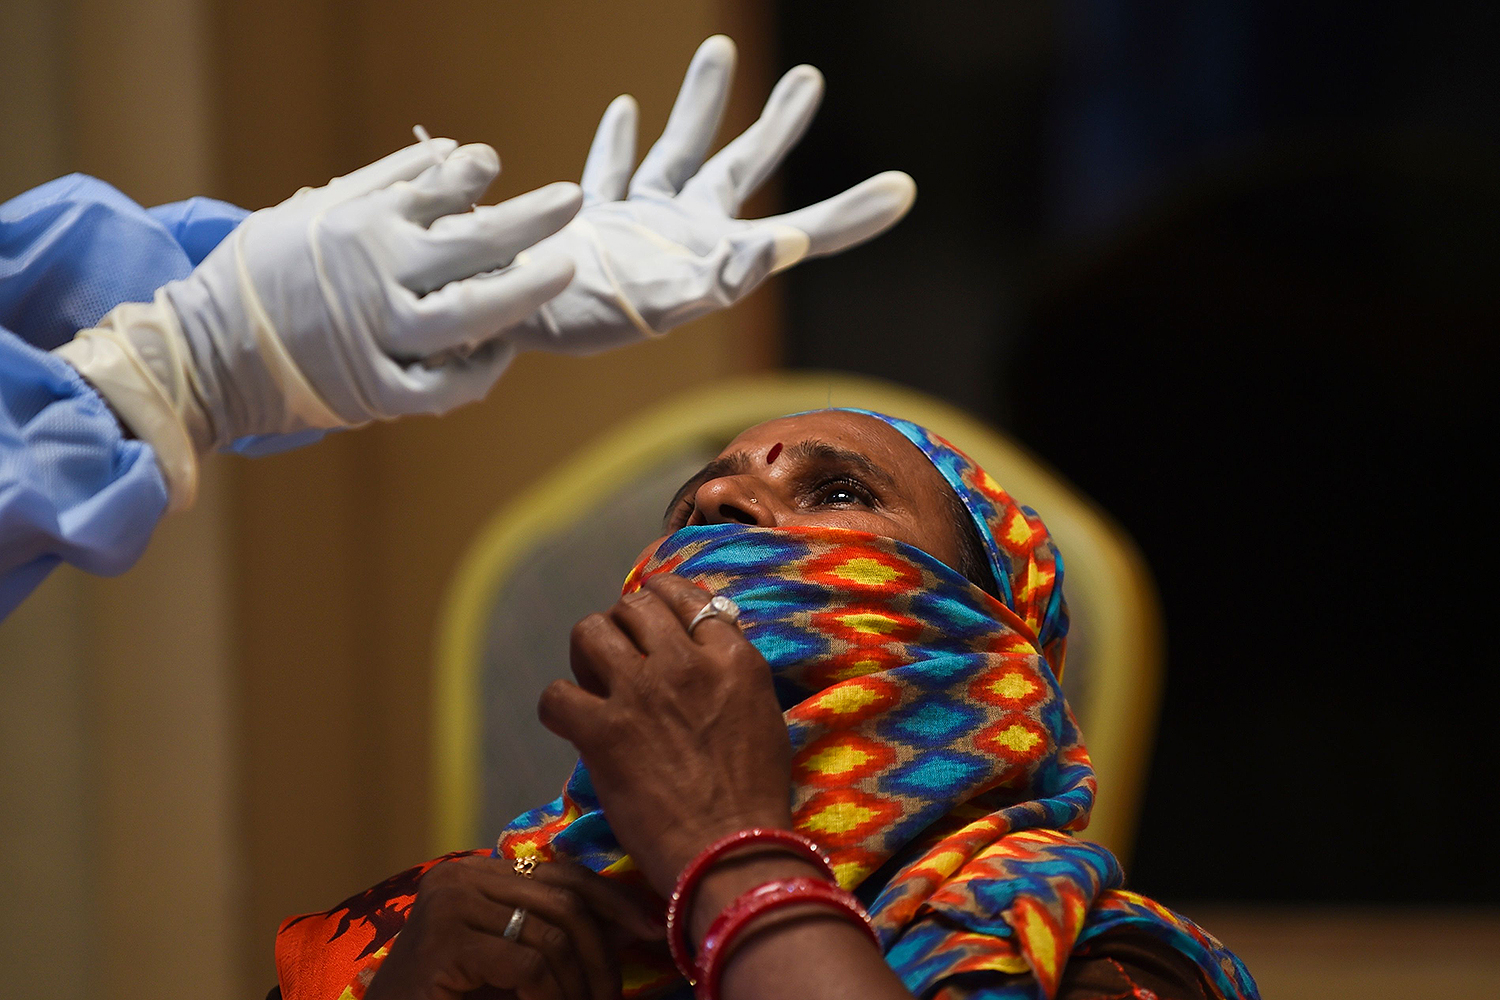 A health worker prepares to take a swab sample from a passenger at Ranip Bus Terminus in Ahmedabad, India, on July 13. SAM PANTHAKY/AFP via Getty Images